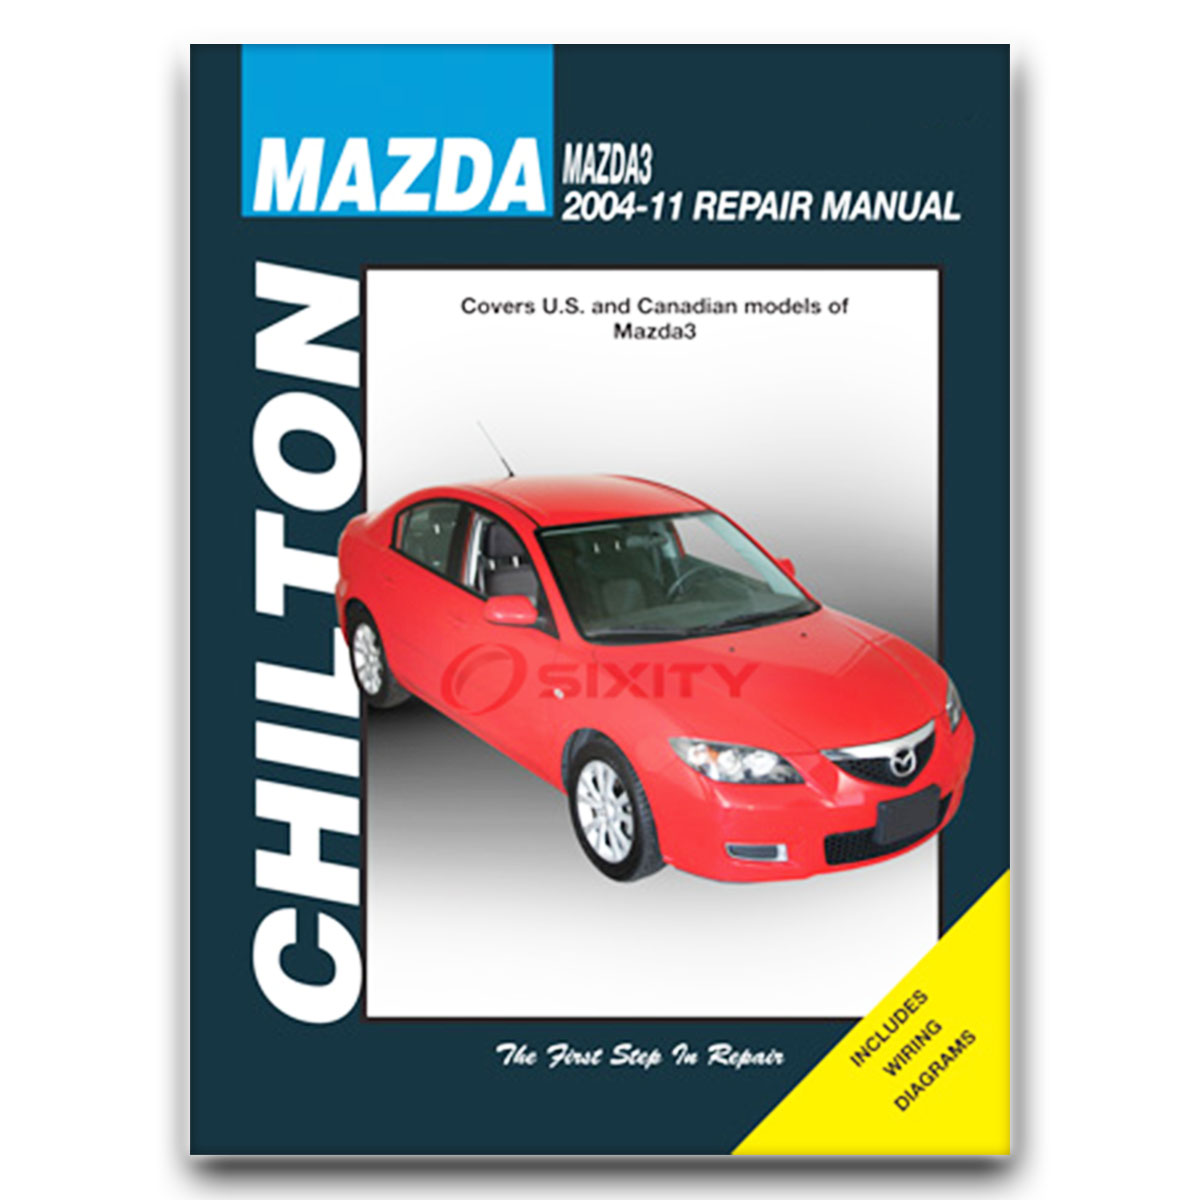 mazda 3 chilton repair manual s i mazdaspeed sp23 shop service rh ebay com mazda 3 service repair manual pdf mazdaspeed 3 repair manual